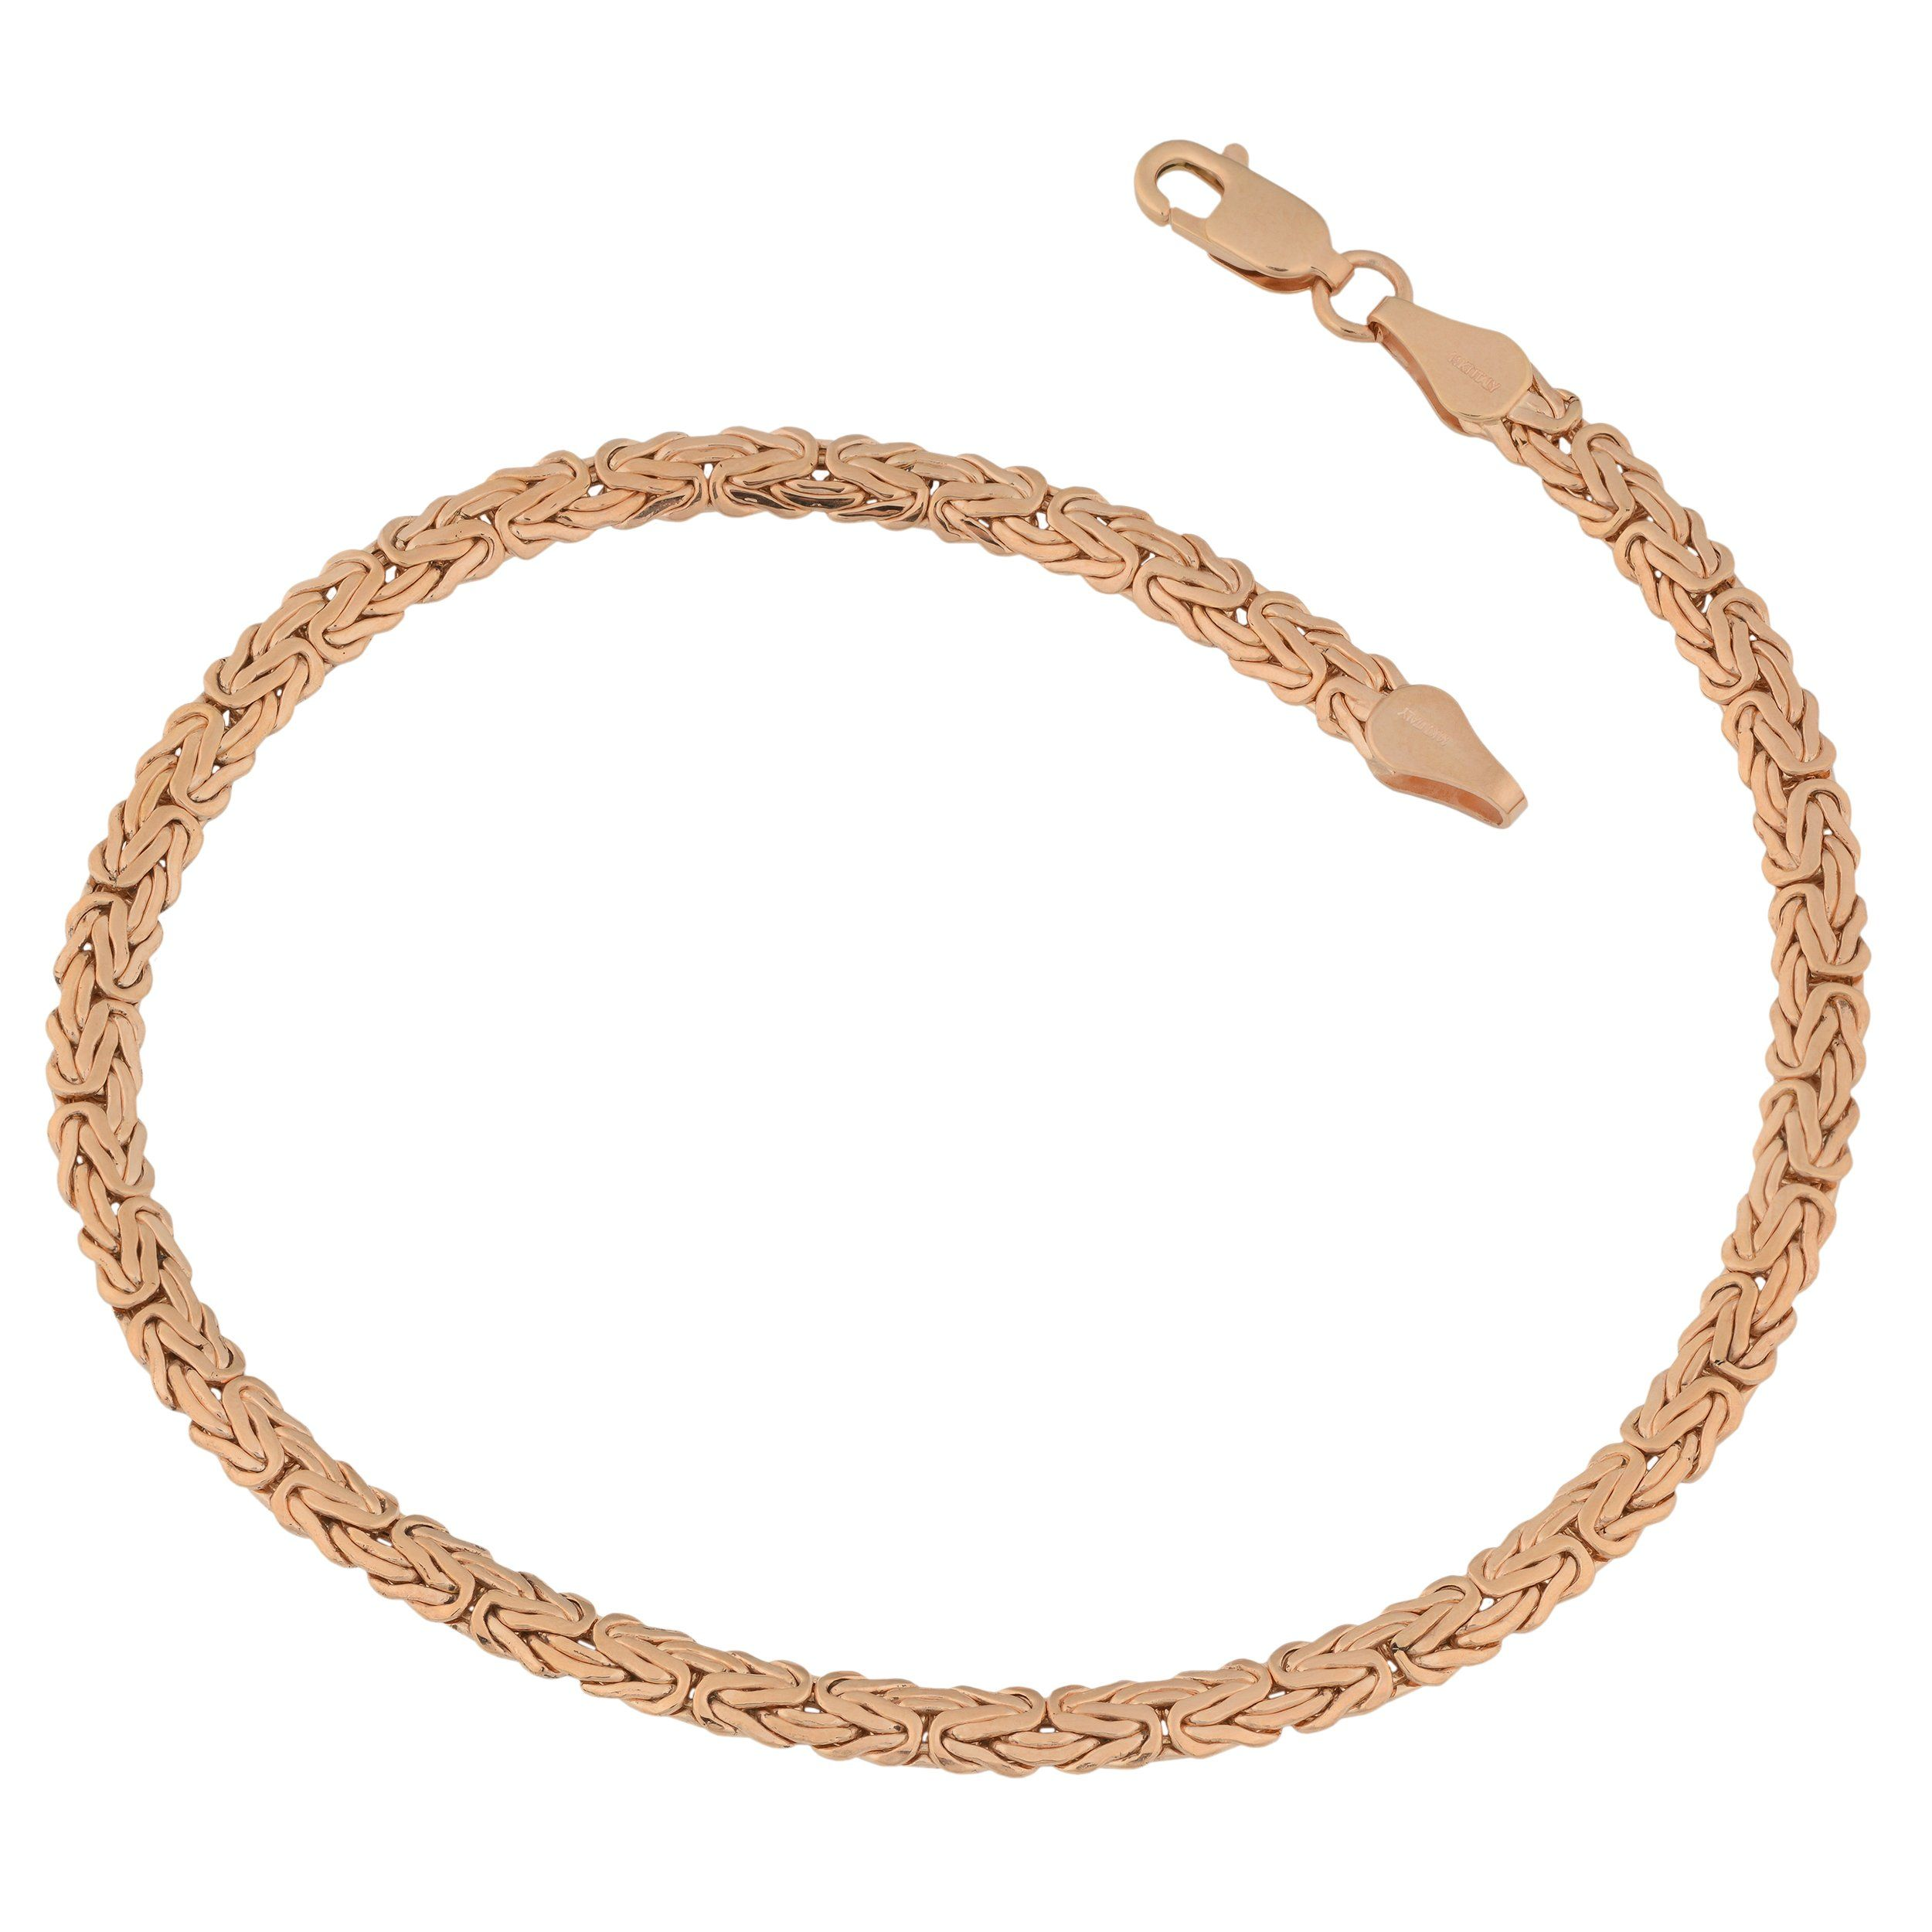 j horseshoe product collection rg rose bracelet category t gemma bar jgemma gold collections gallop solid anklet